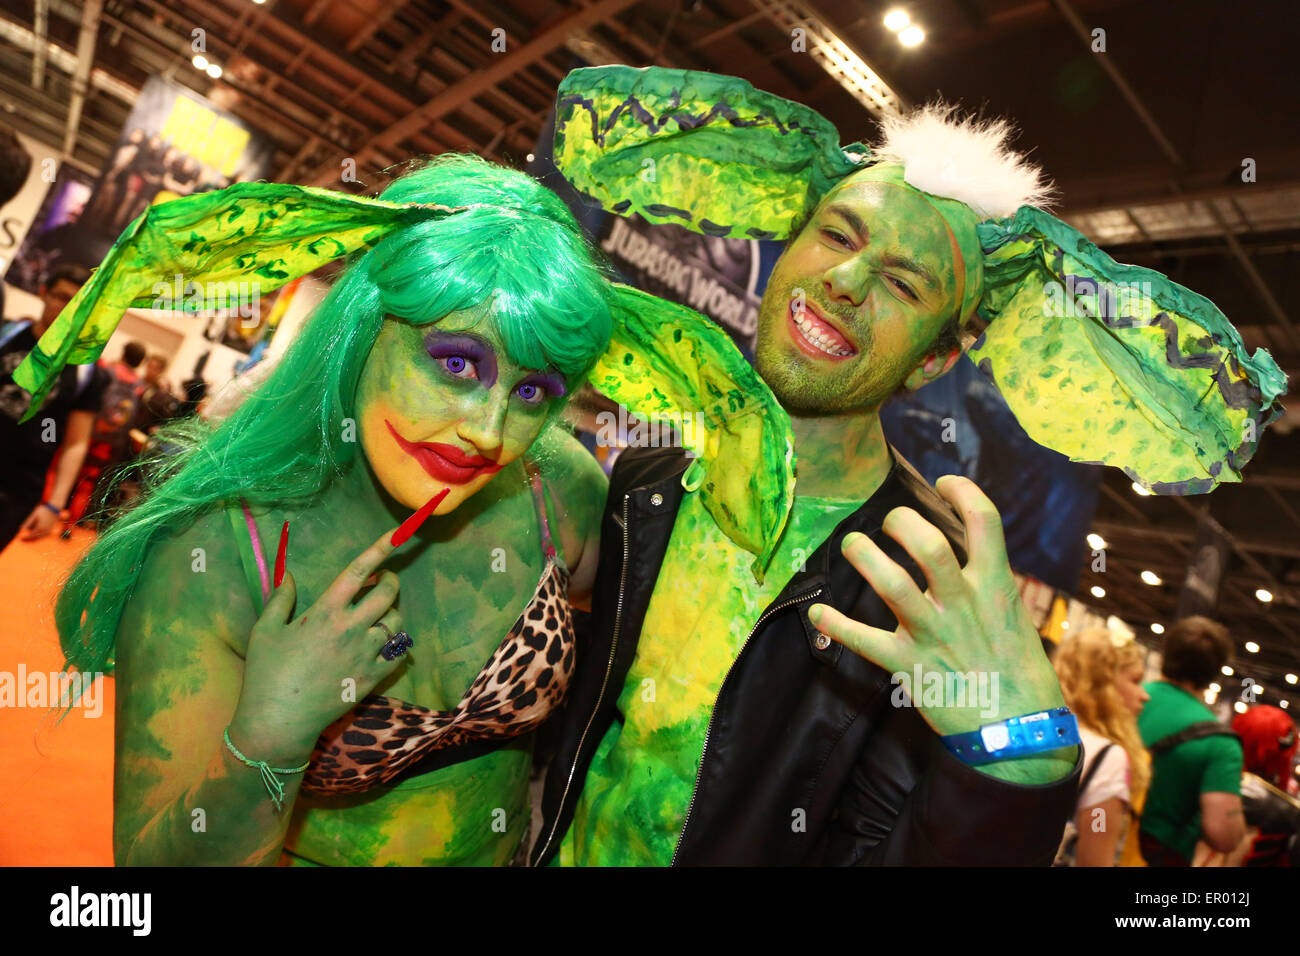 London, UK. 23rd May 2015. Participants at MCM Comic Con, Excel, London 2015 where fans dressed as their favourite - Stock Image